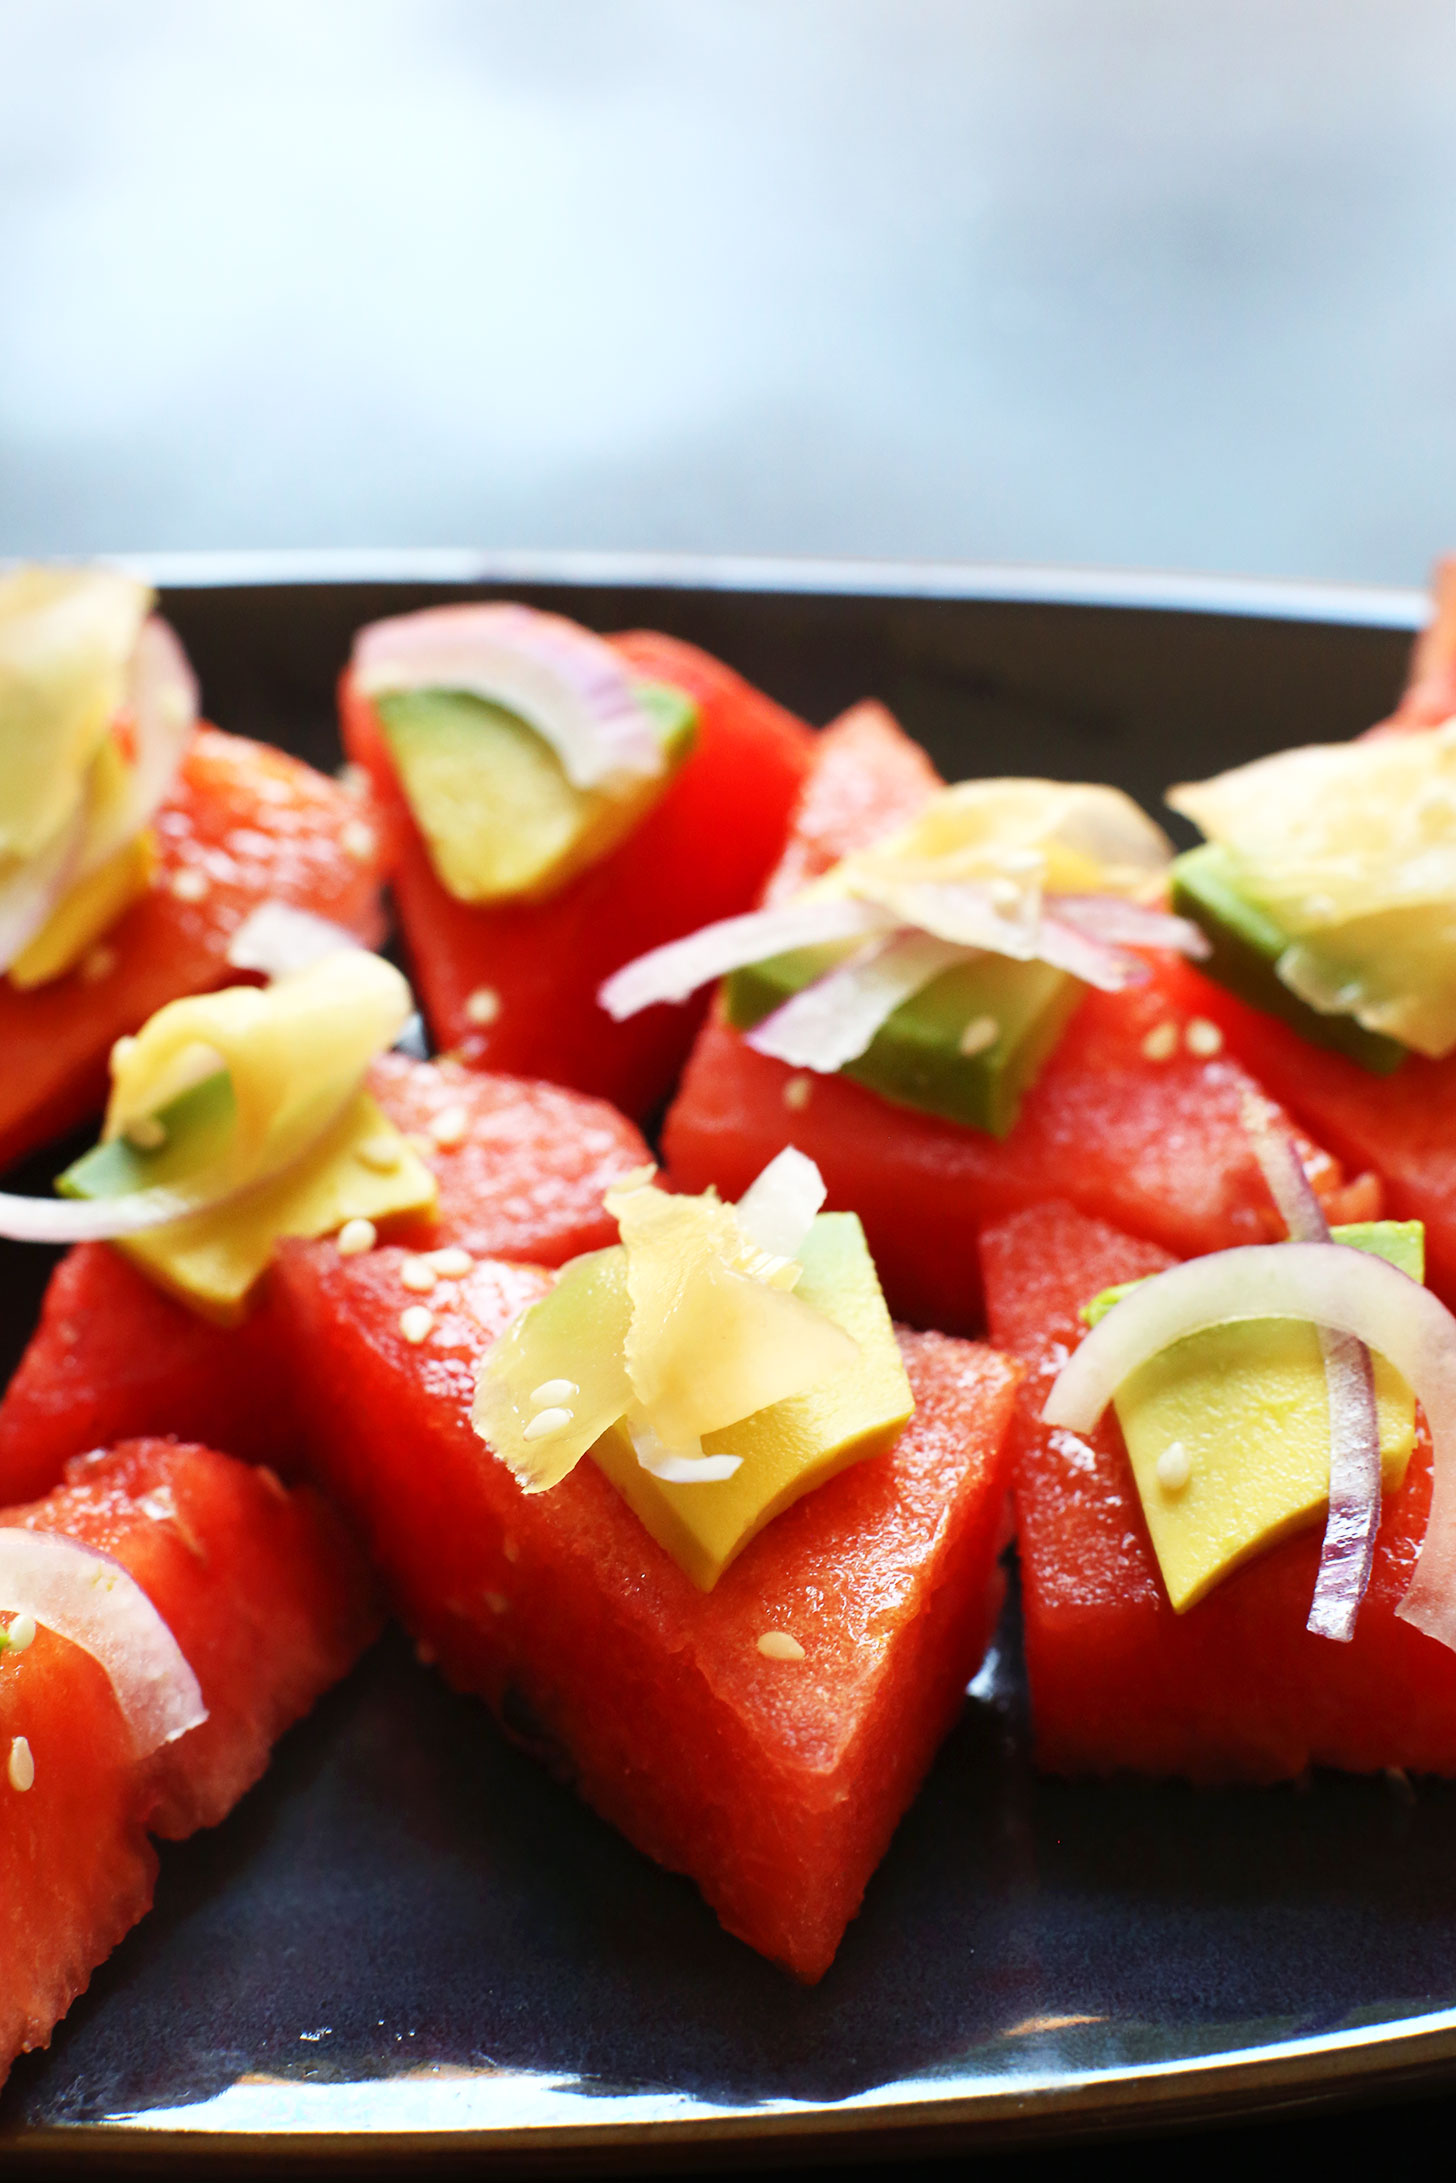 Plate of Watermelon Sashimi for a summertime vegan appetizer